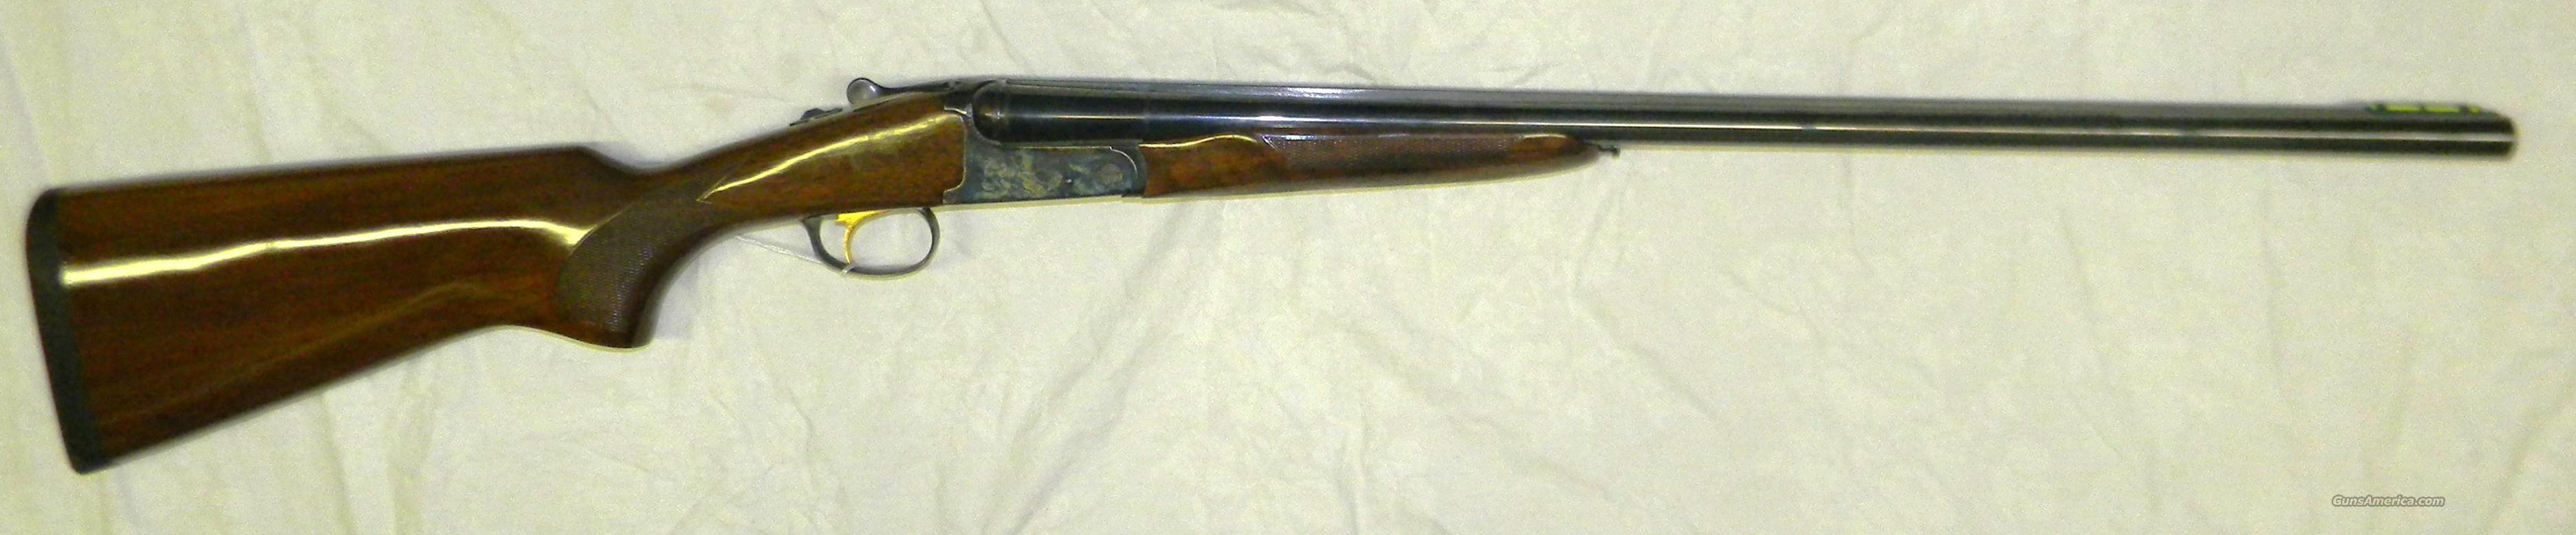 Charles Daly Hunter II 20 GA  Guns > Shotguns > Charles Daly Shotguns > SxS